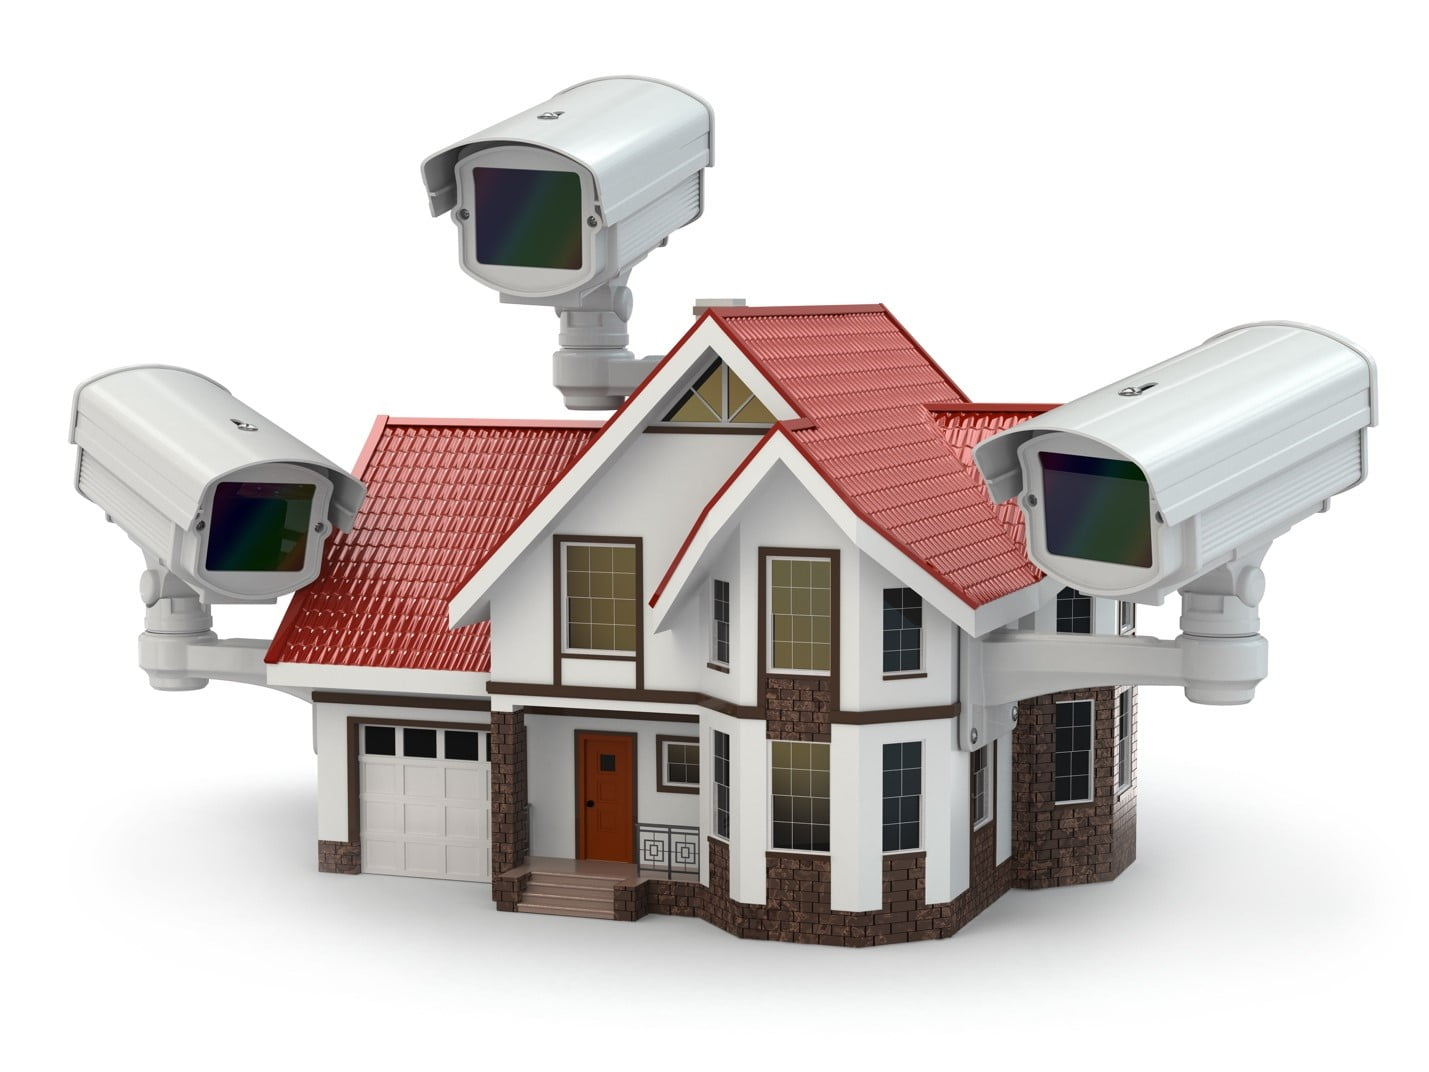 how many security cameras do you need